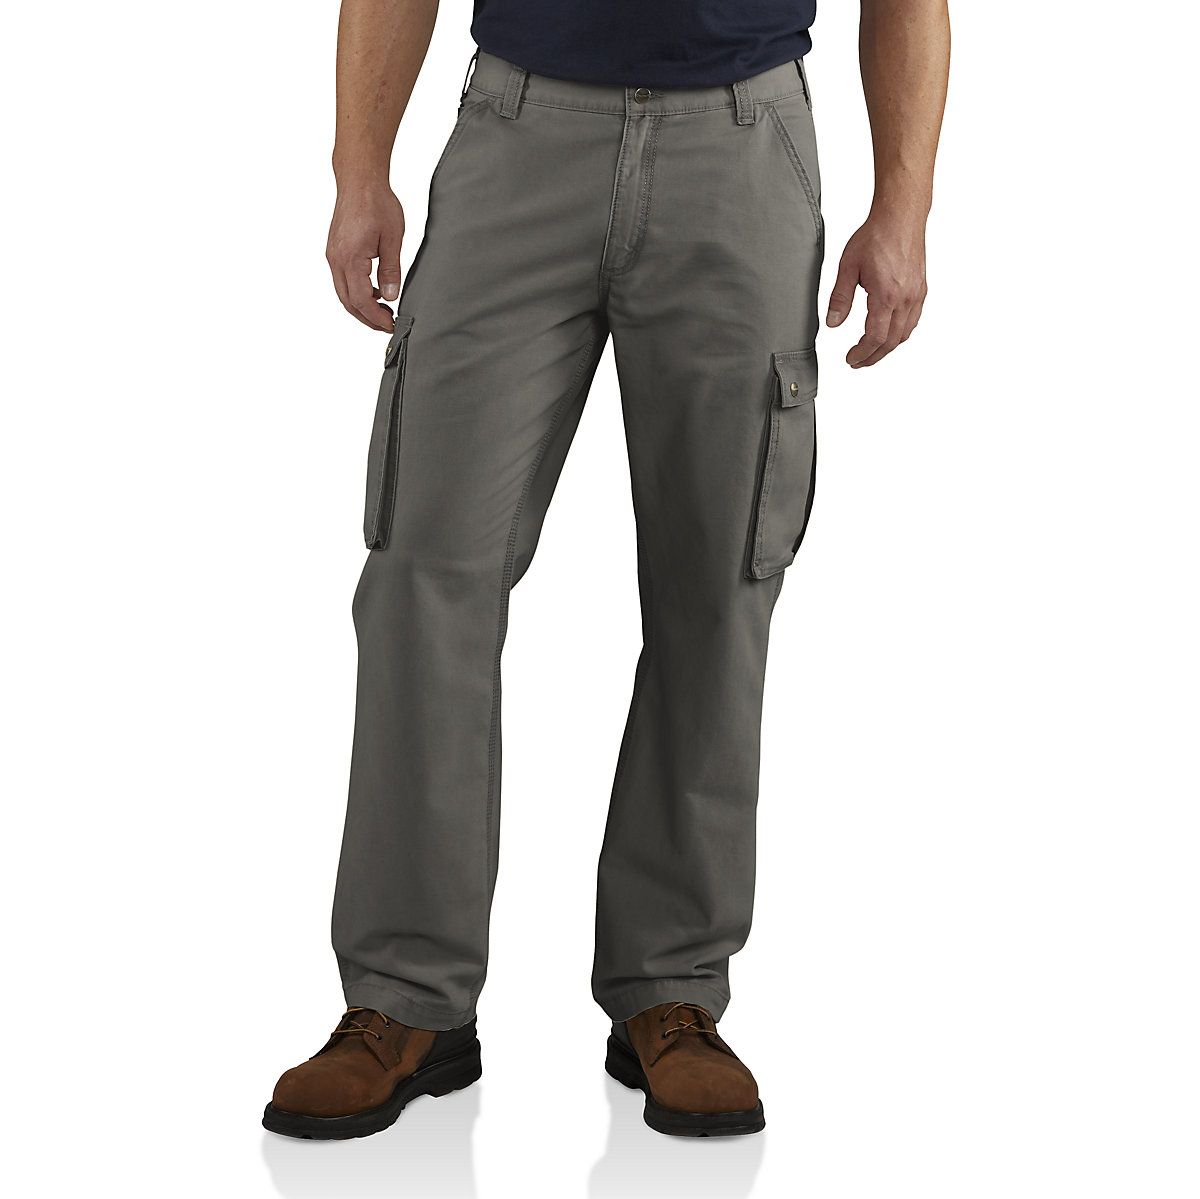 Model  Pants Carhartt Wip Cargo Columbia Ripstop  Cargo Pants For Women